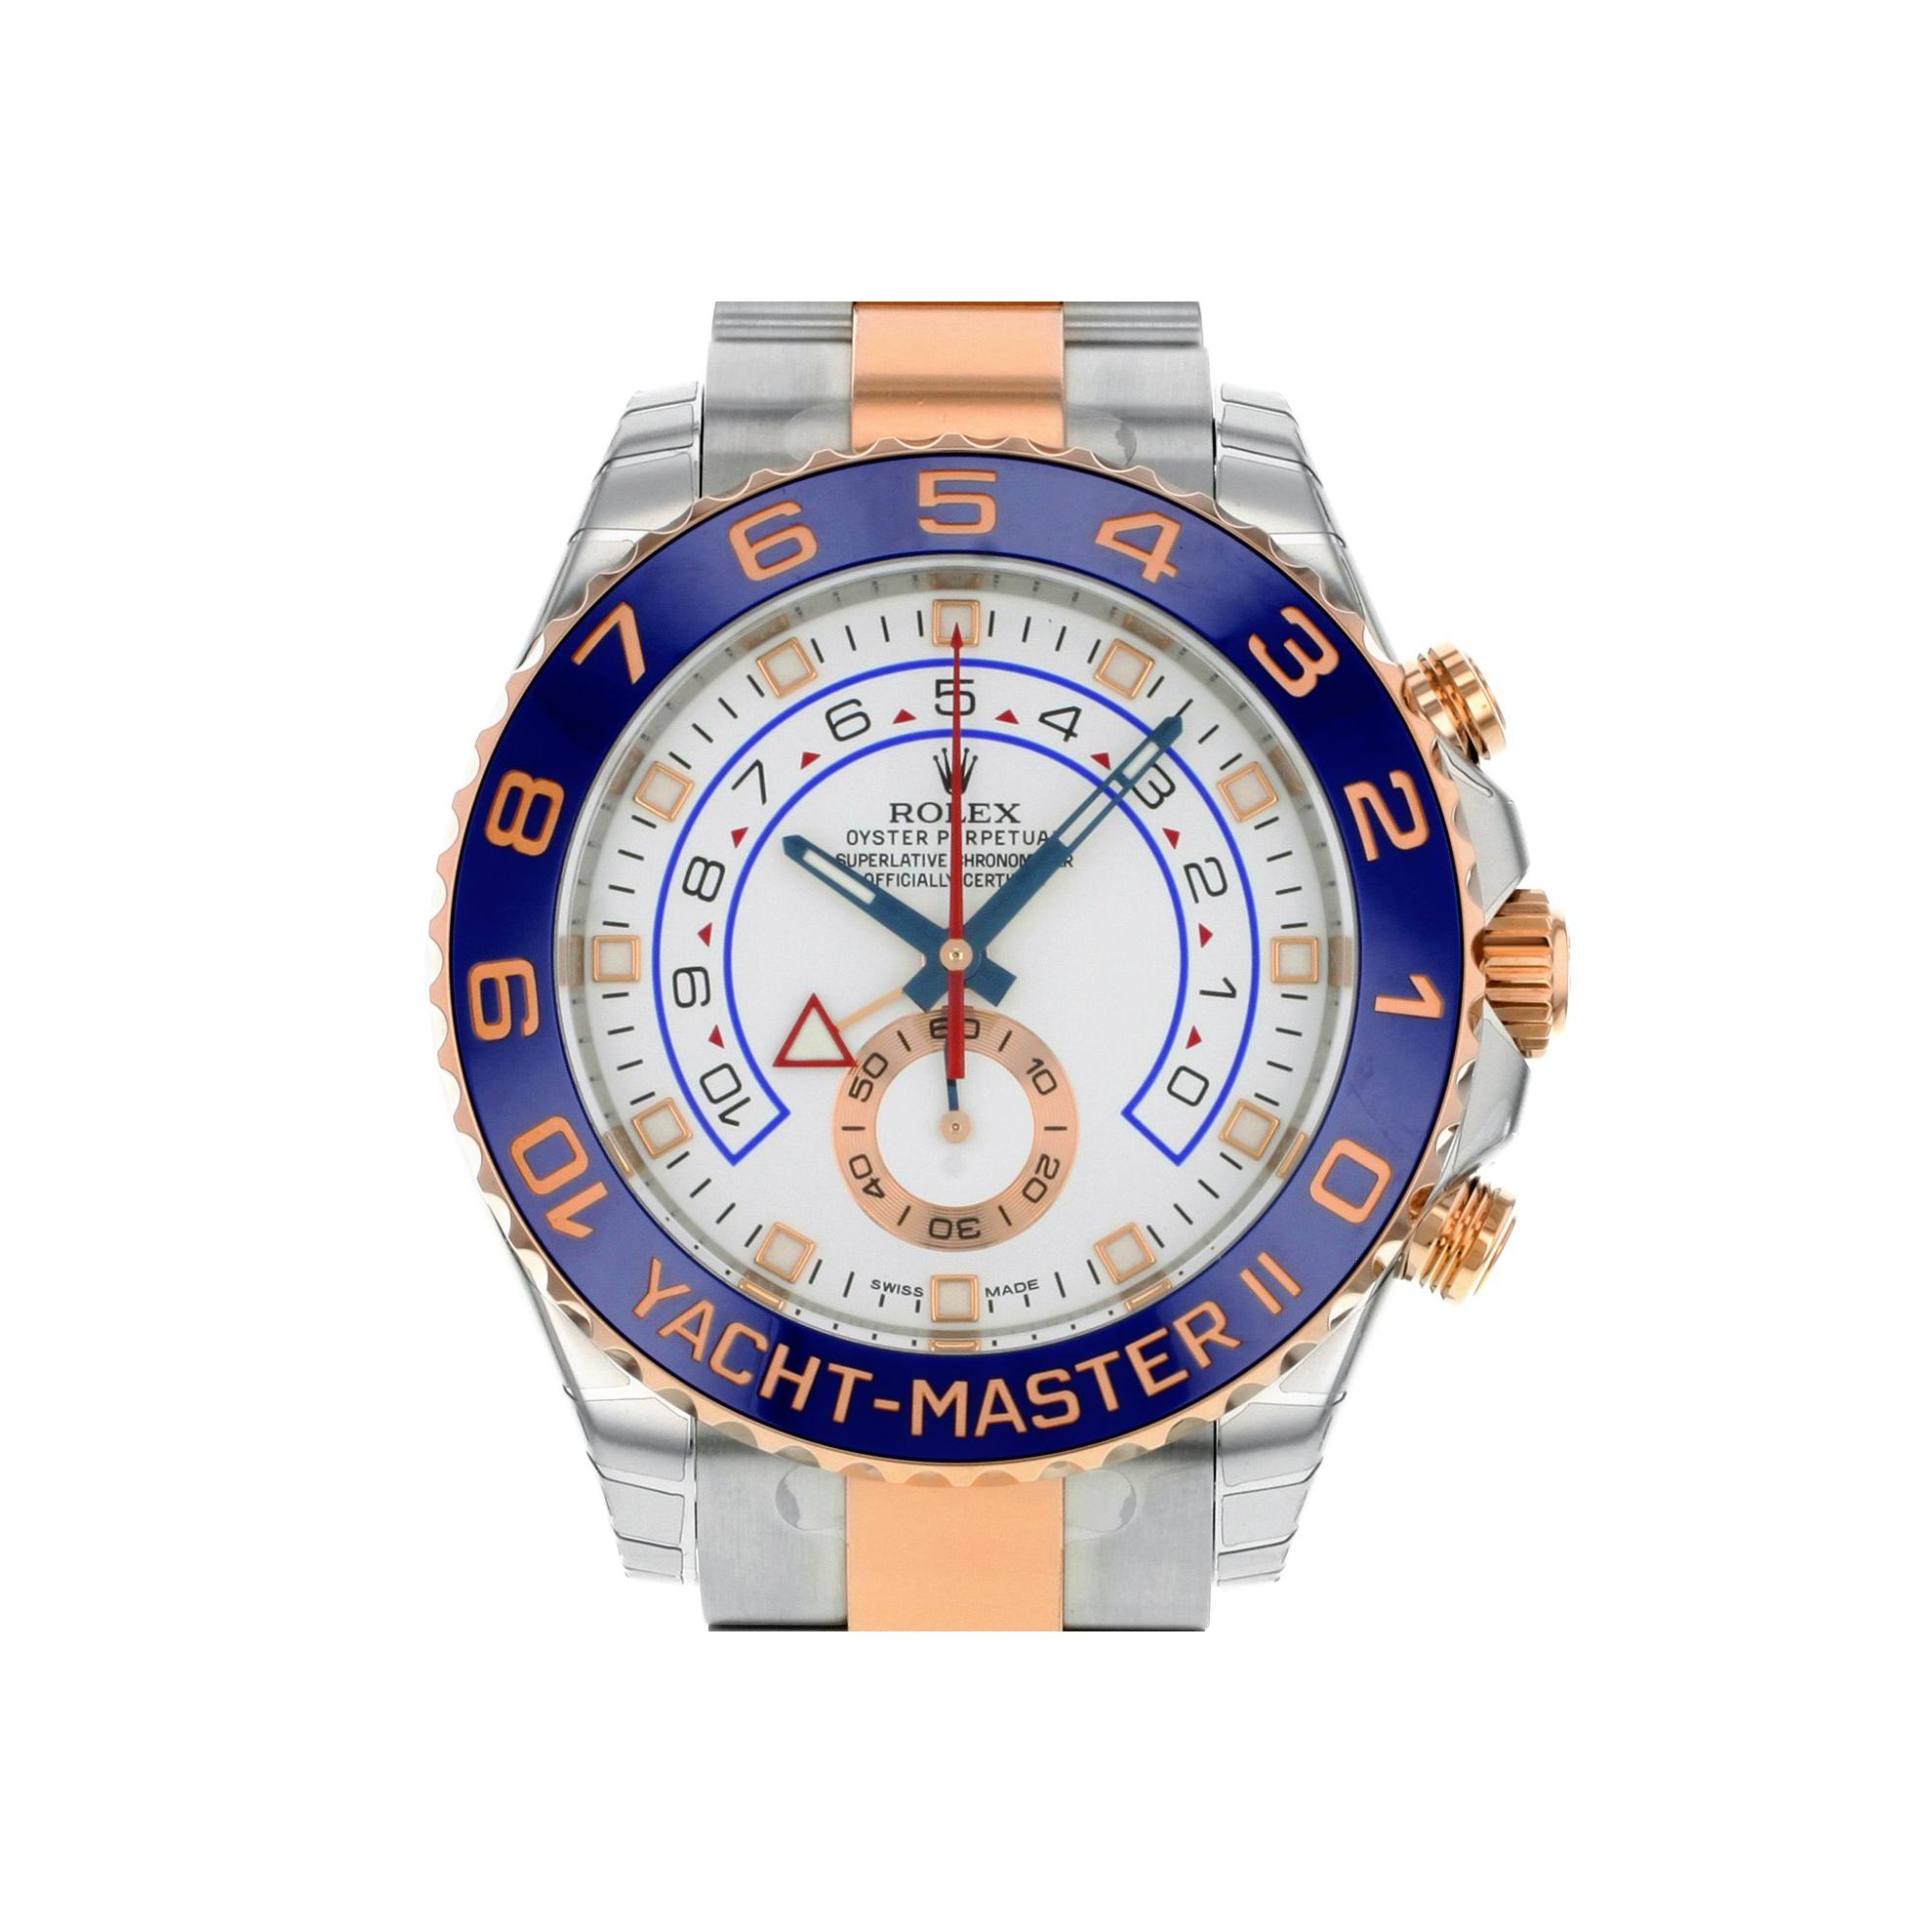 B00UB503HY B00UB503HY To UK £22,427 to US $20,665 Rolex Yacht-Master II 116681 Steel & 18K Pink Gold Automatic Men's Watch